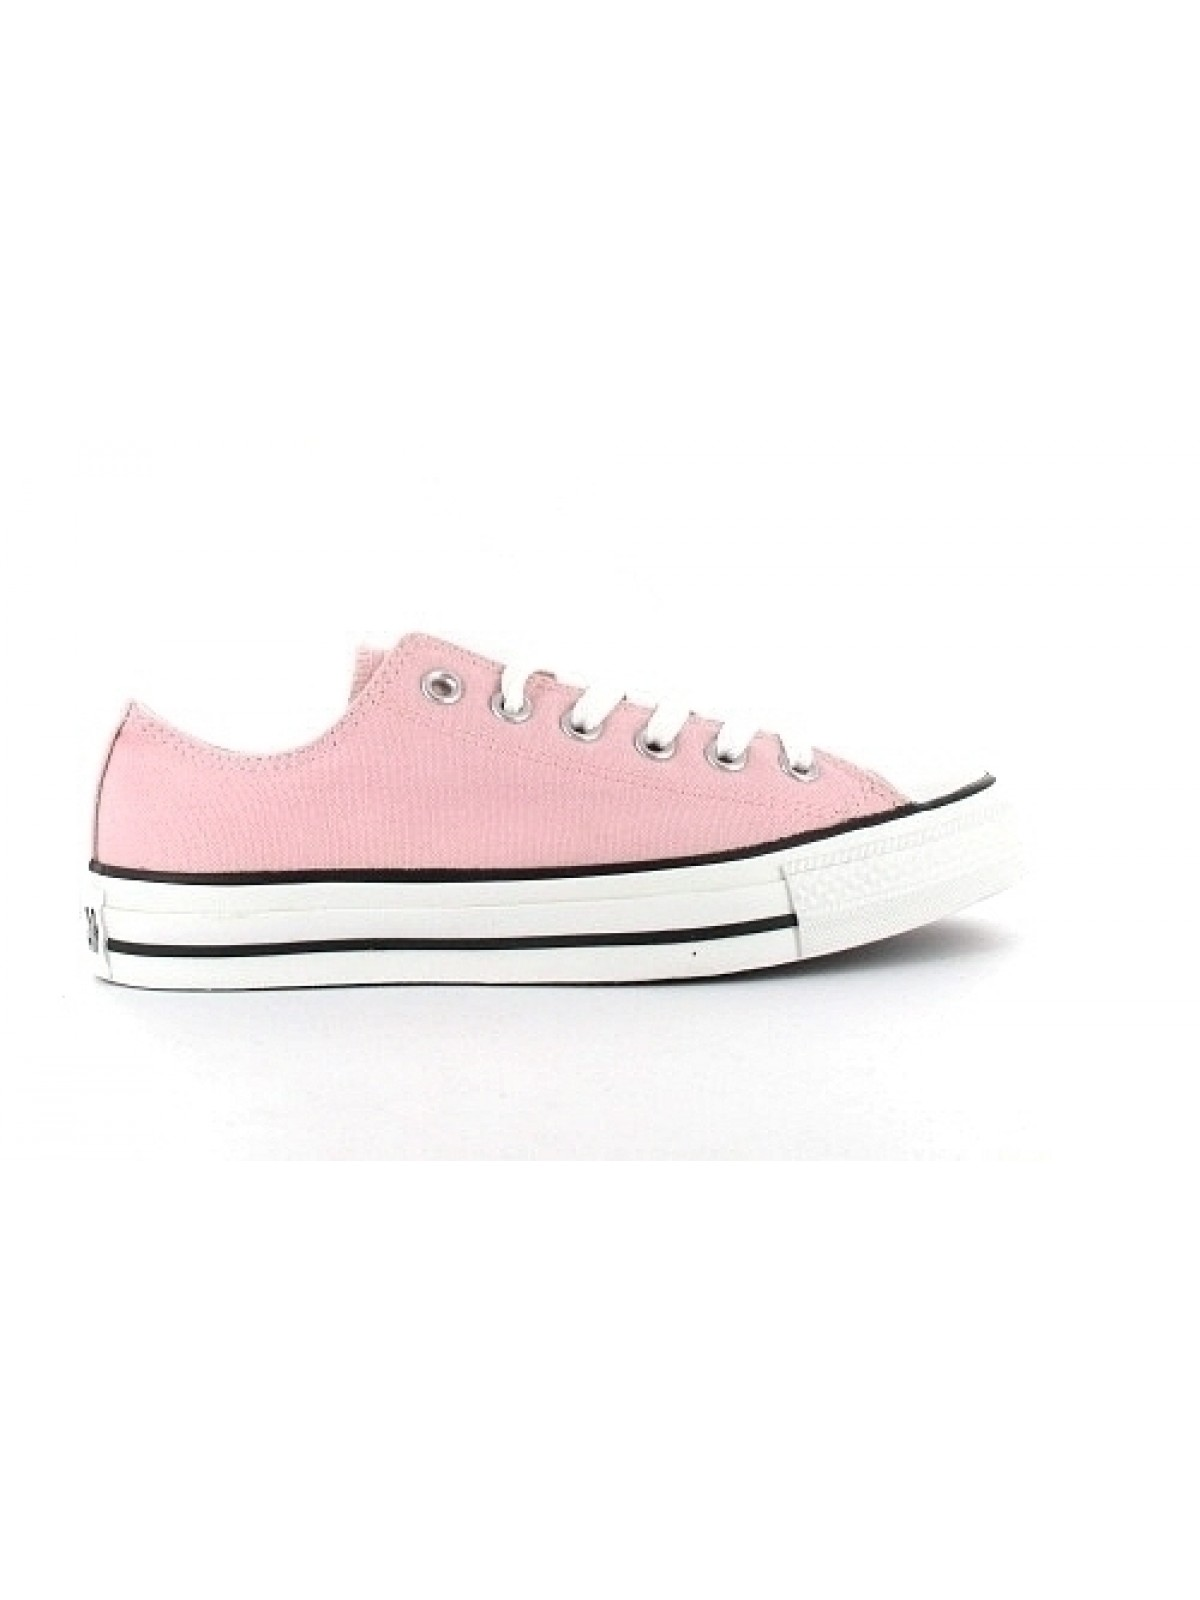 Converse Chuck Taylor all star toile basse rose